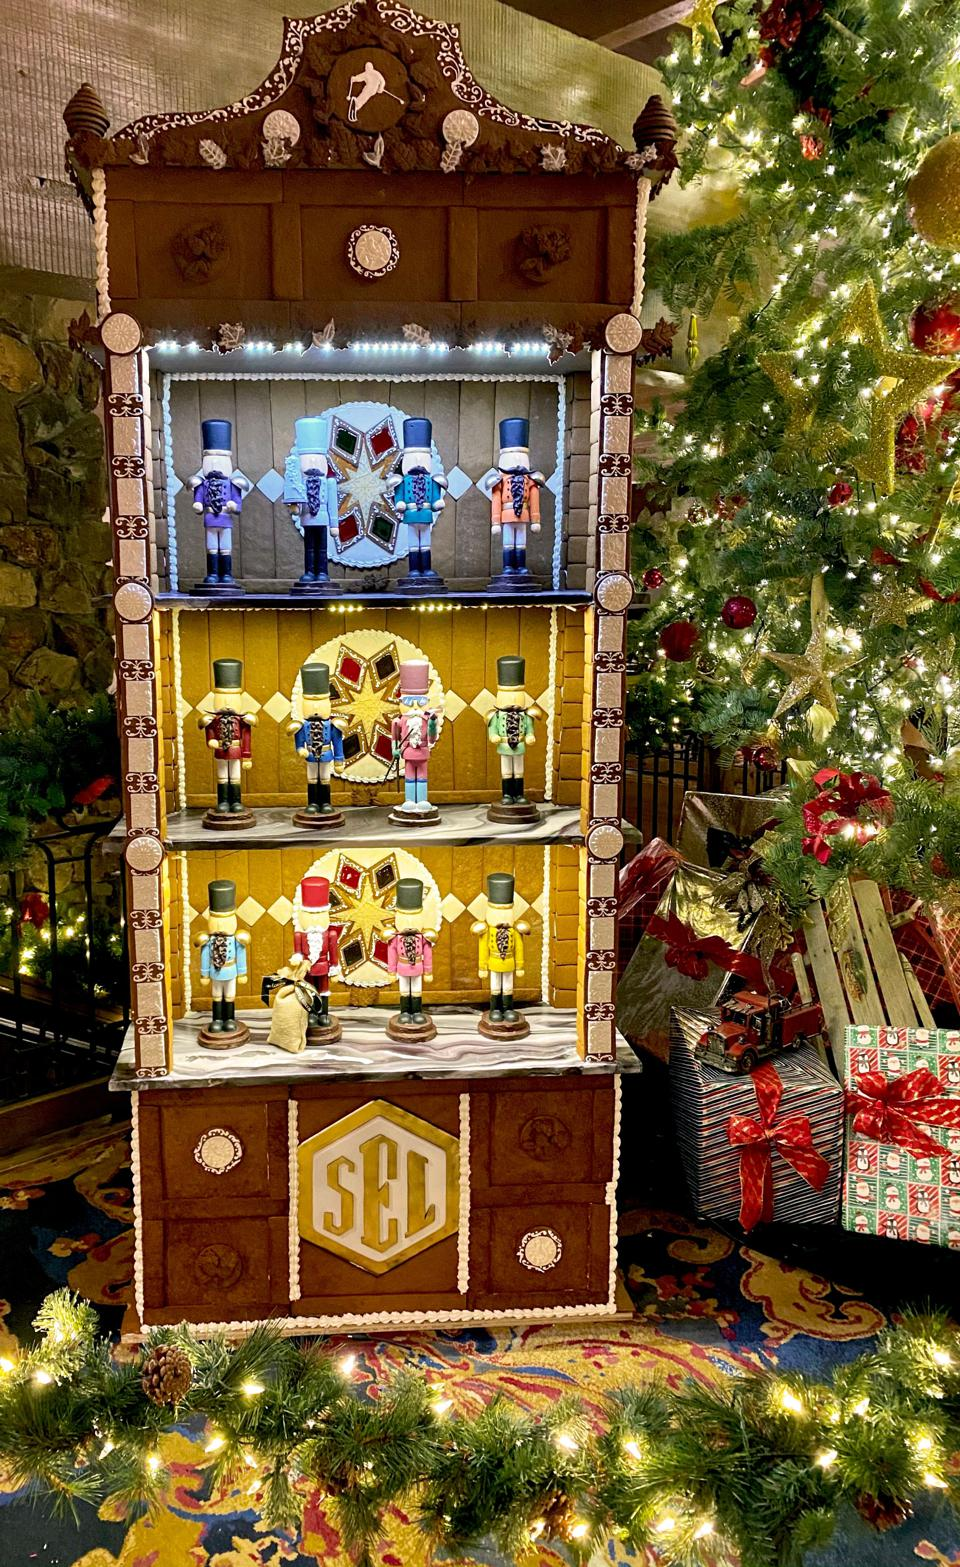 Antique gingerbread cabinet near Christmas tree.